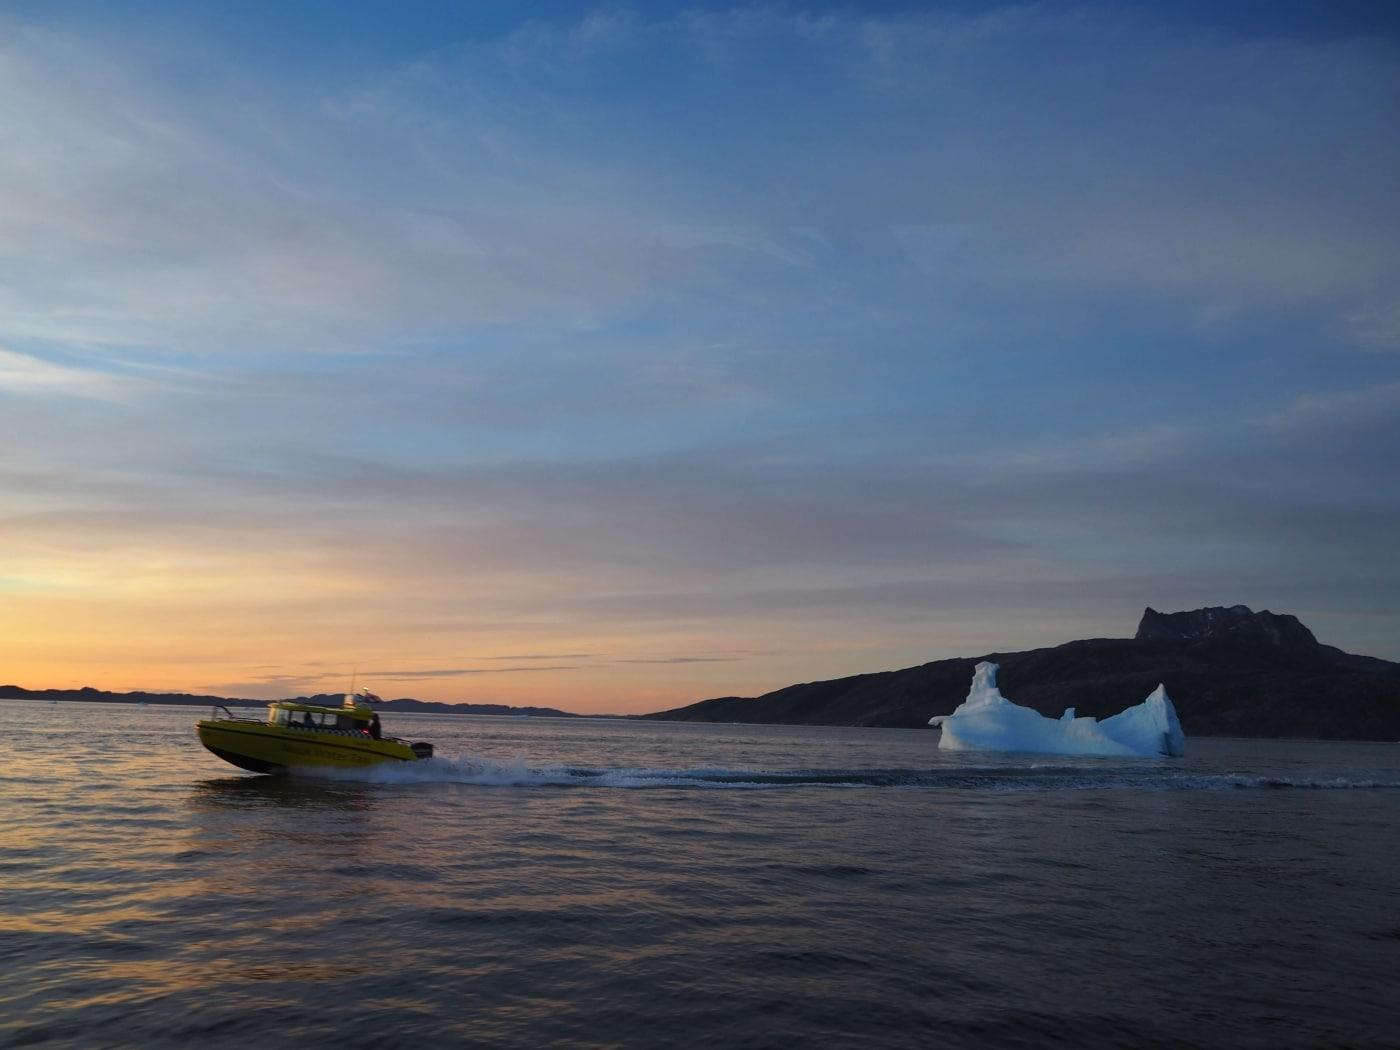 Speed boat during sunset.